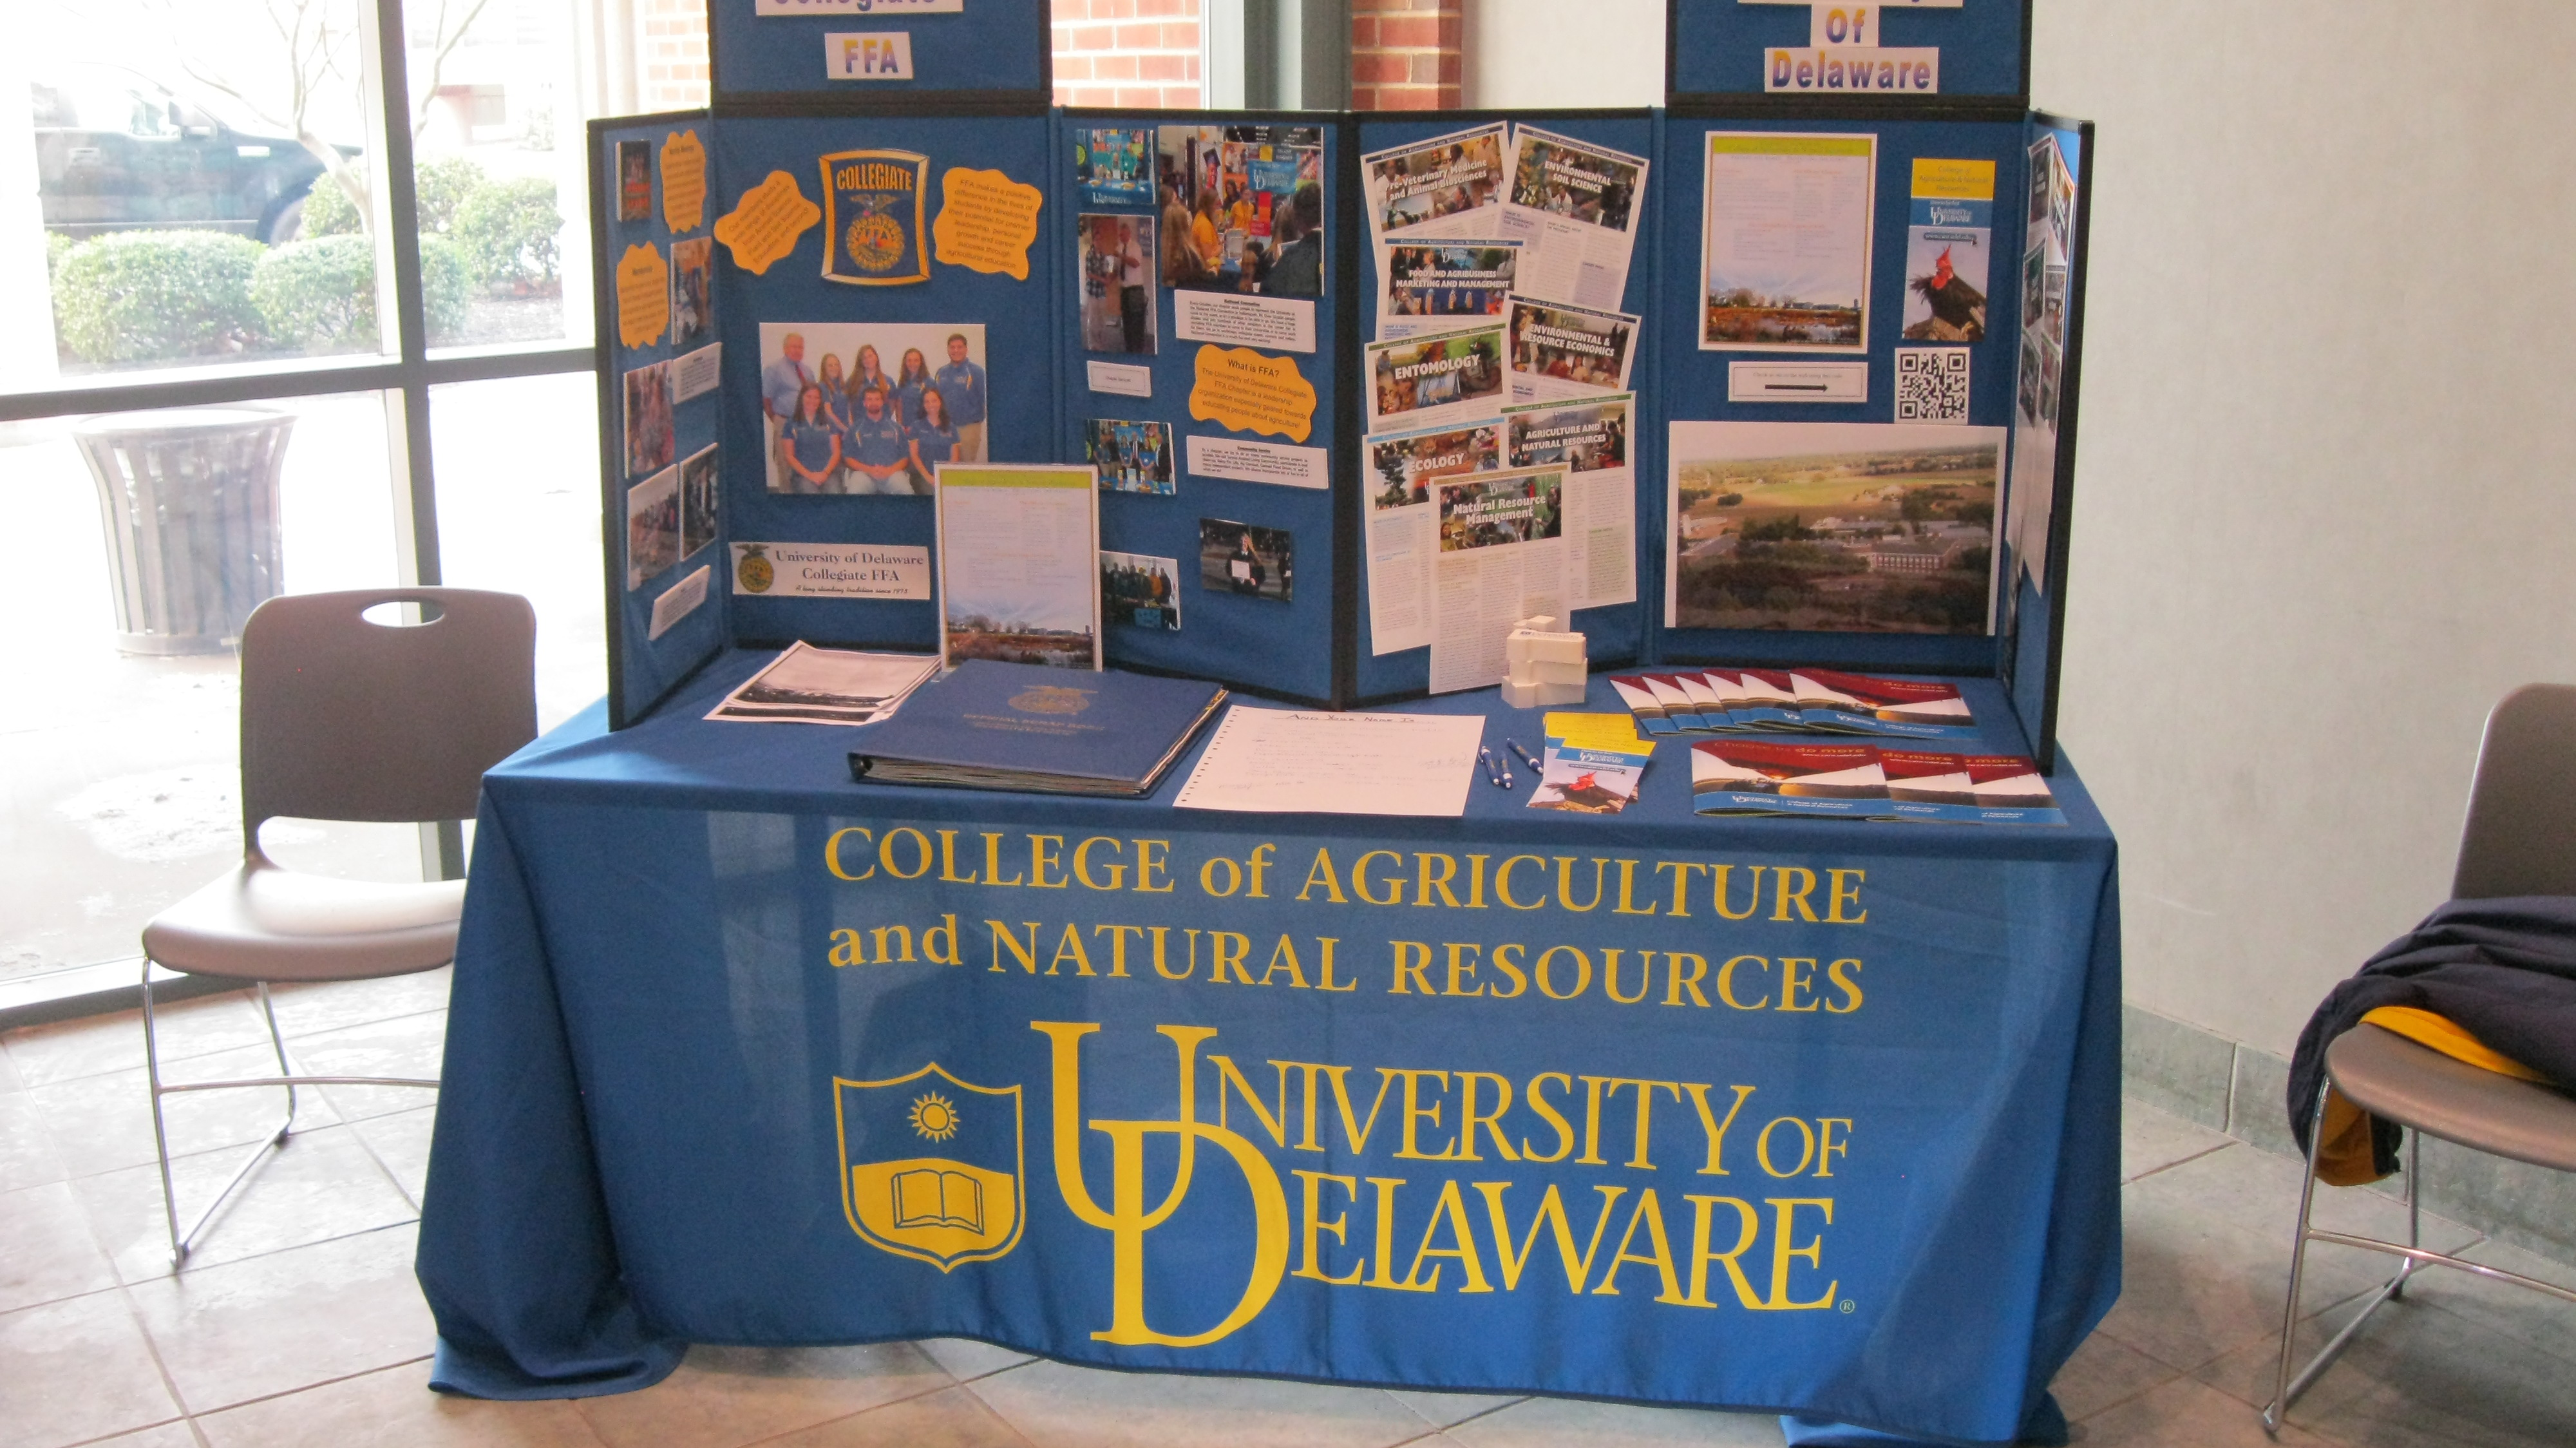 Delaware State University Department Of Agriculture And Natural Resources